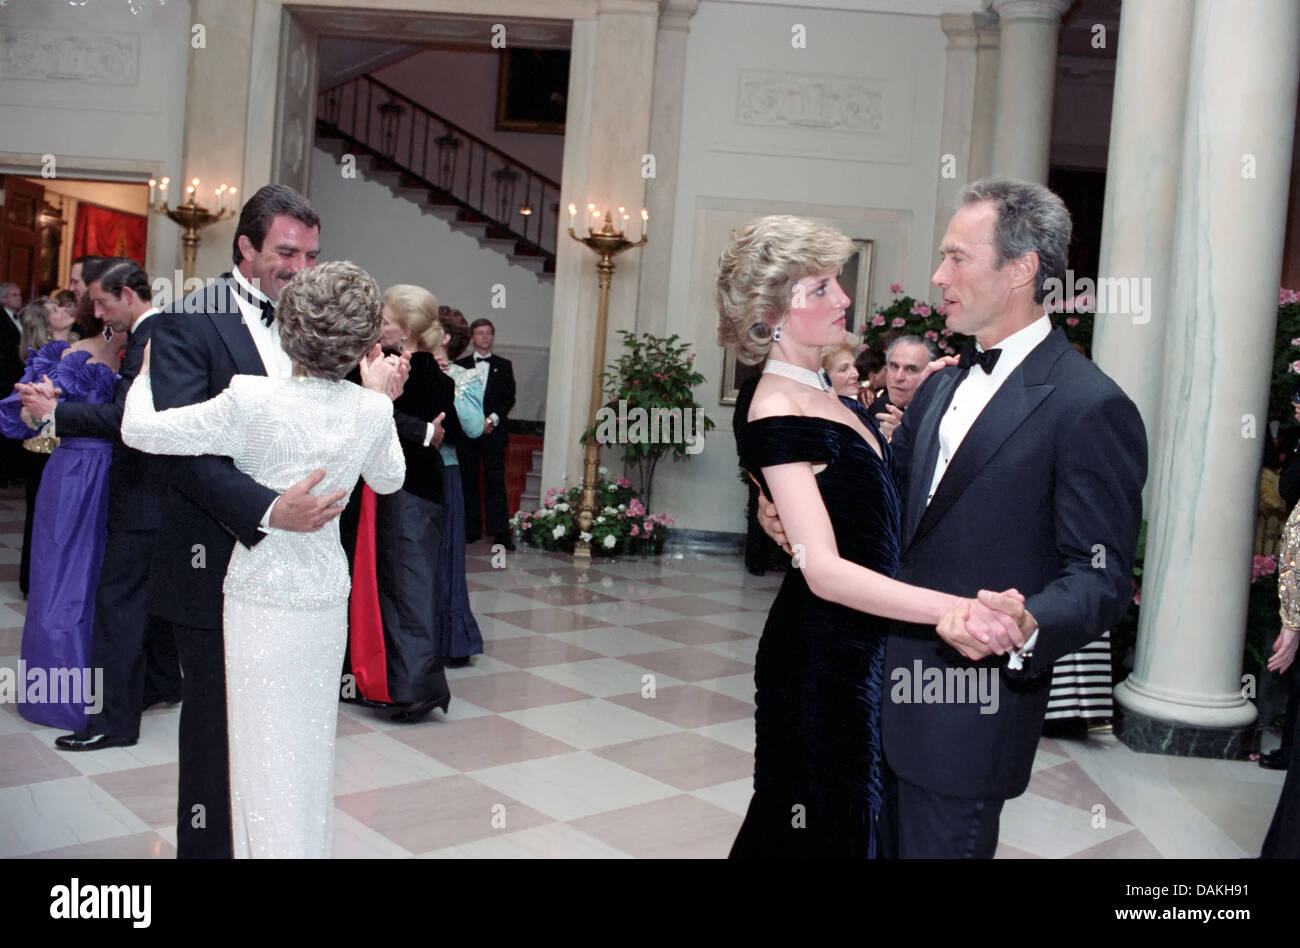 Diana, Princess of Wales dances with actor Clint Eastwood as First Lady Nancy Reagan dances with actor Tom Selleck - Stock Image